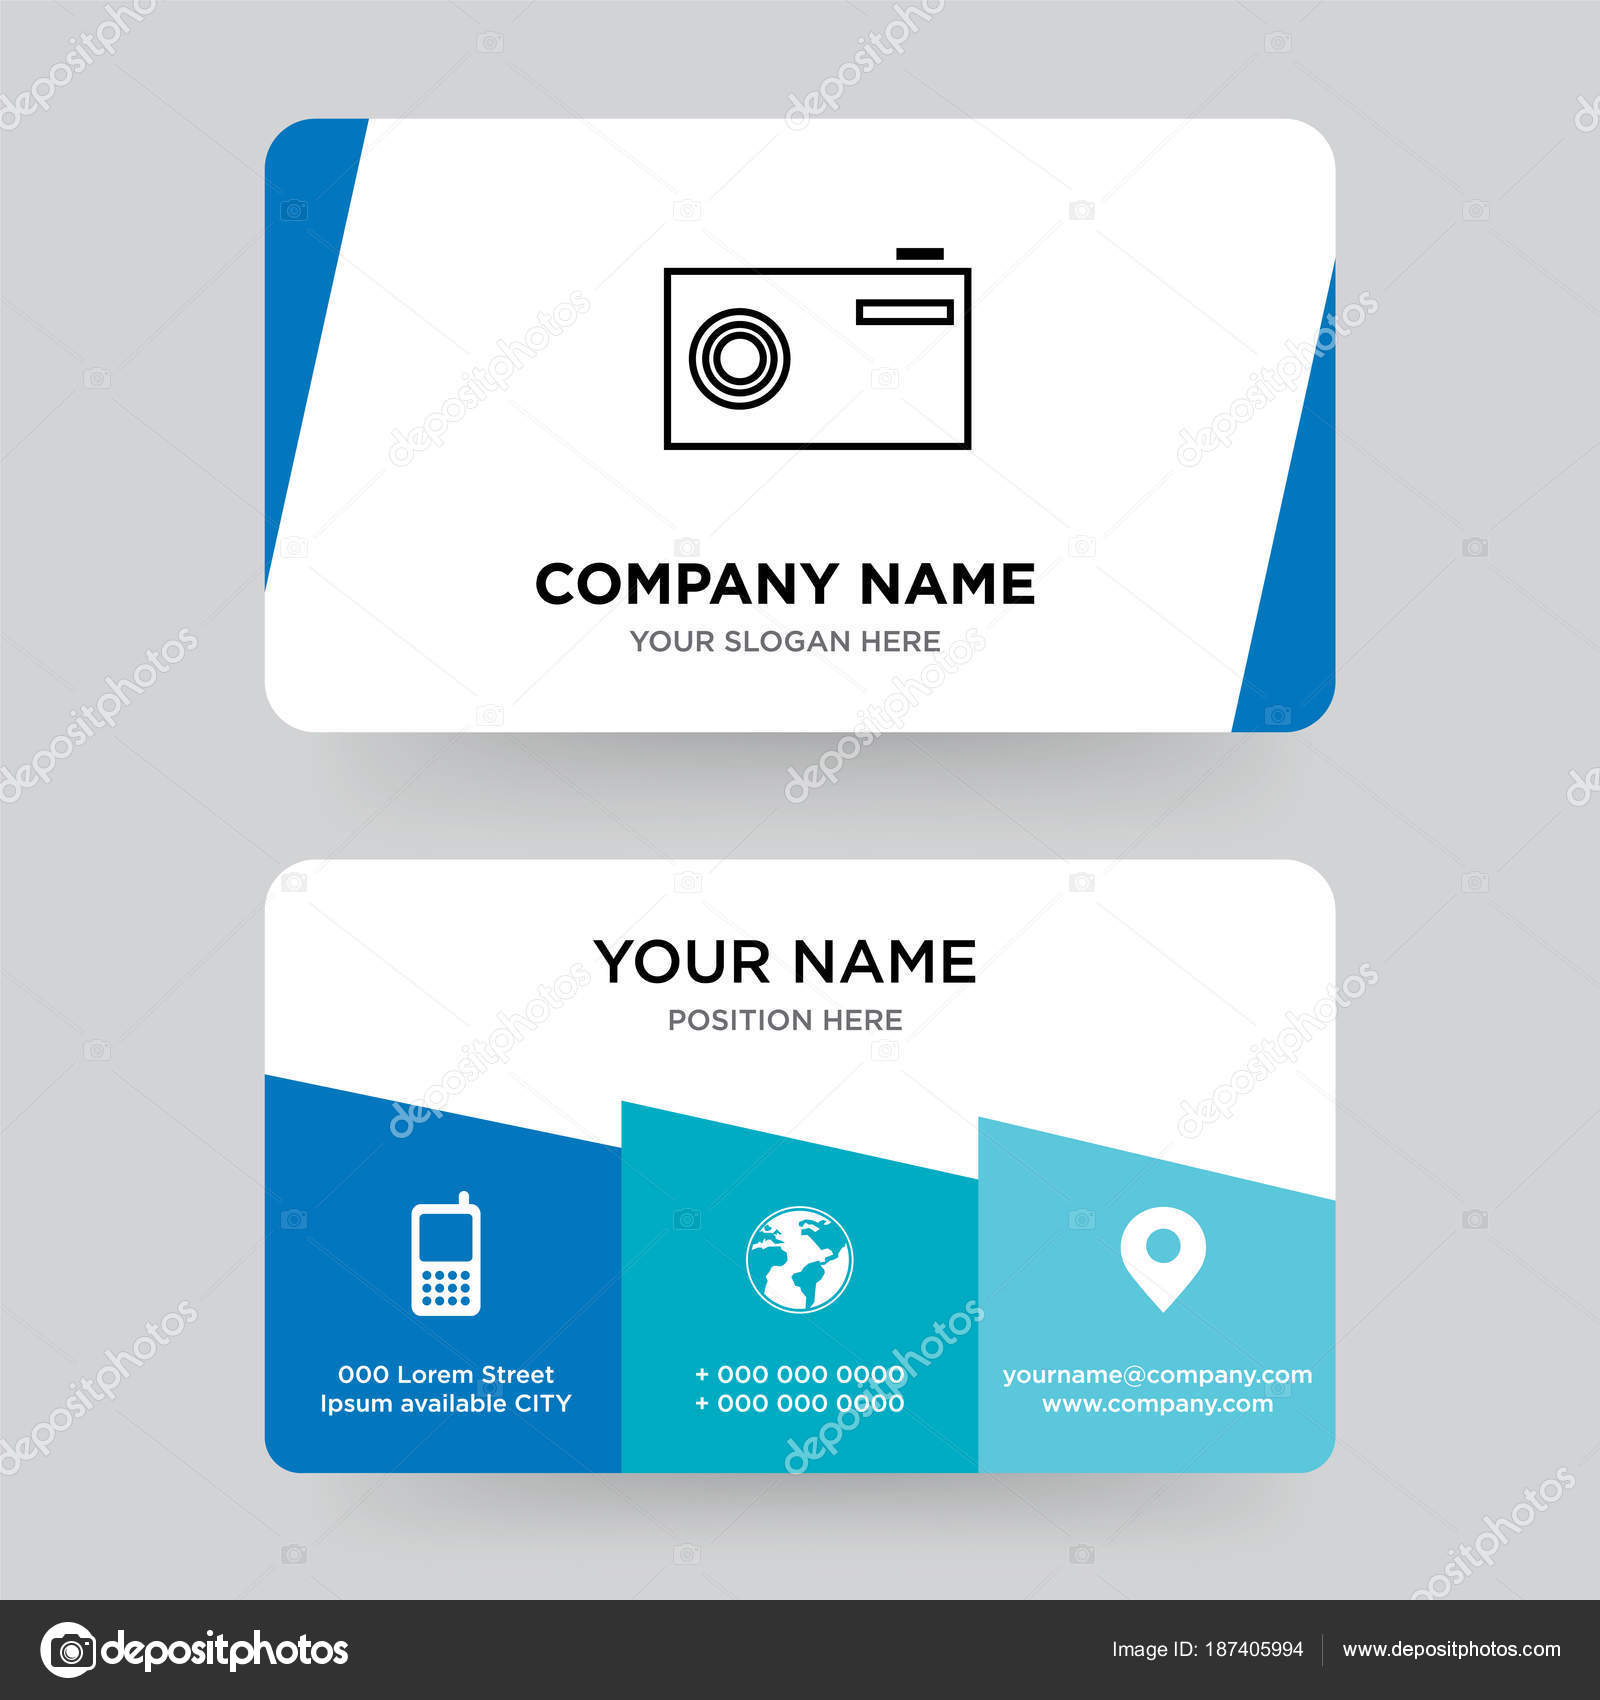 Camera business card design template, Visiting for your company ...